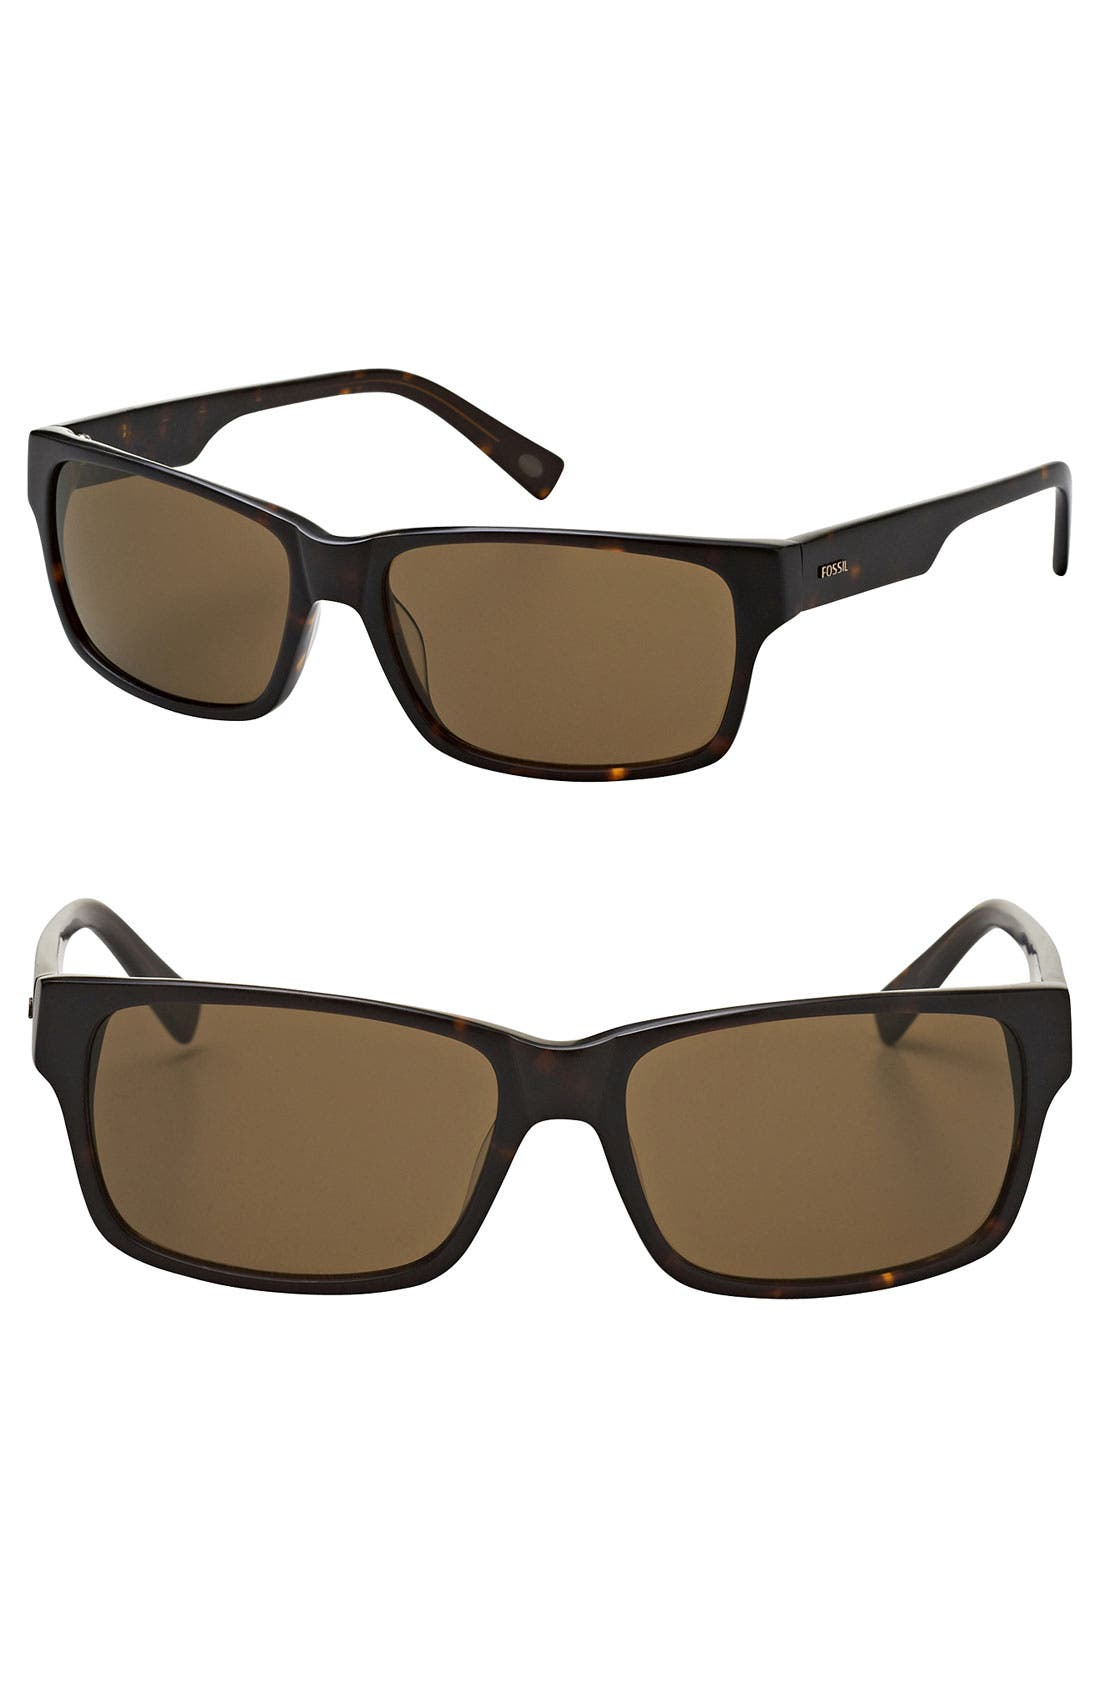 Main Image - Fossil 'Jackson' 60mm Polarized Sunglasses